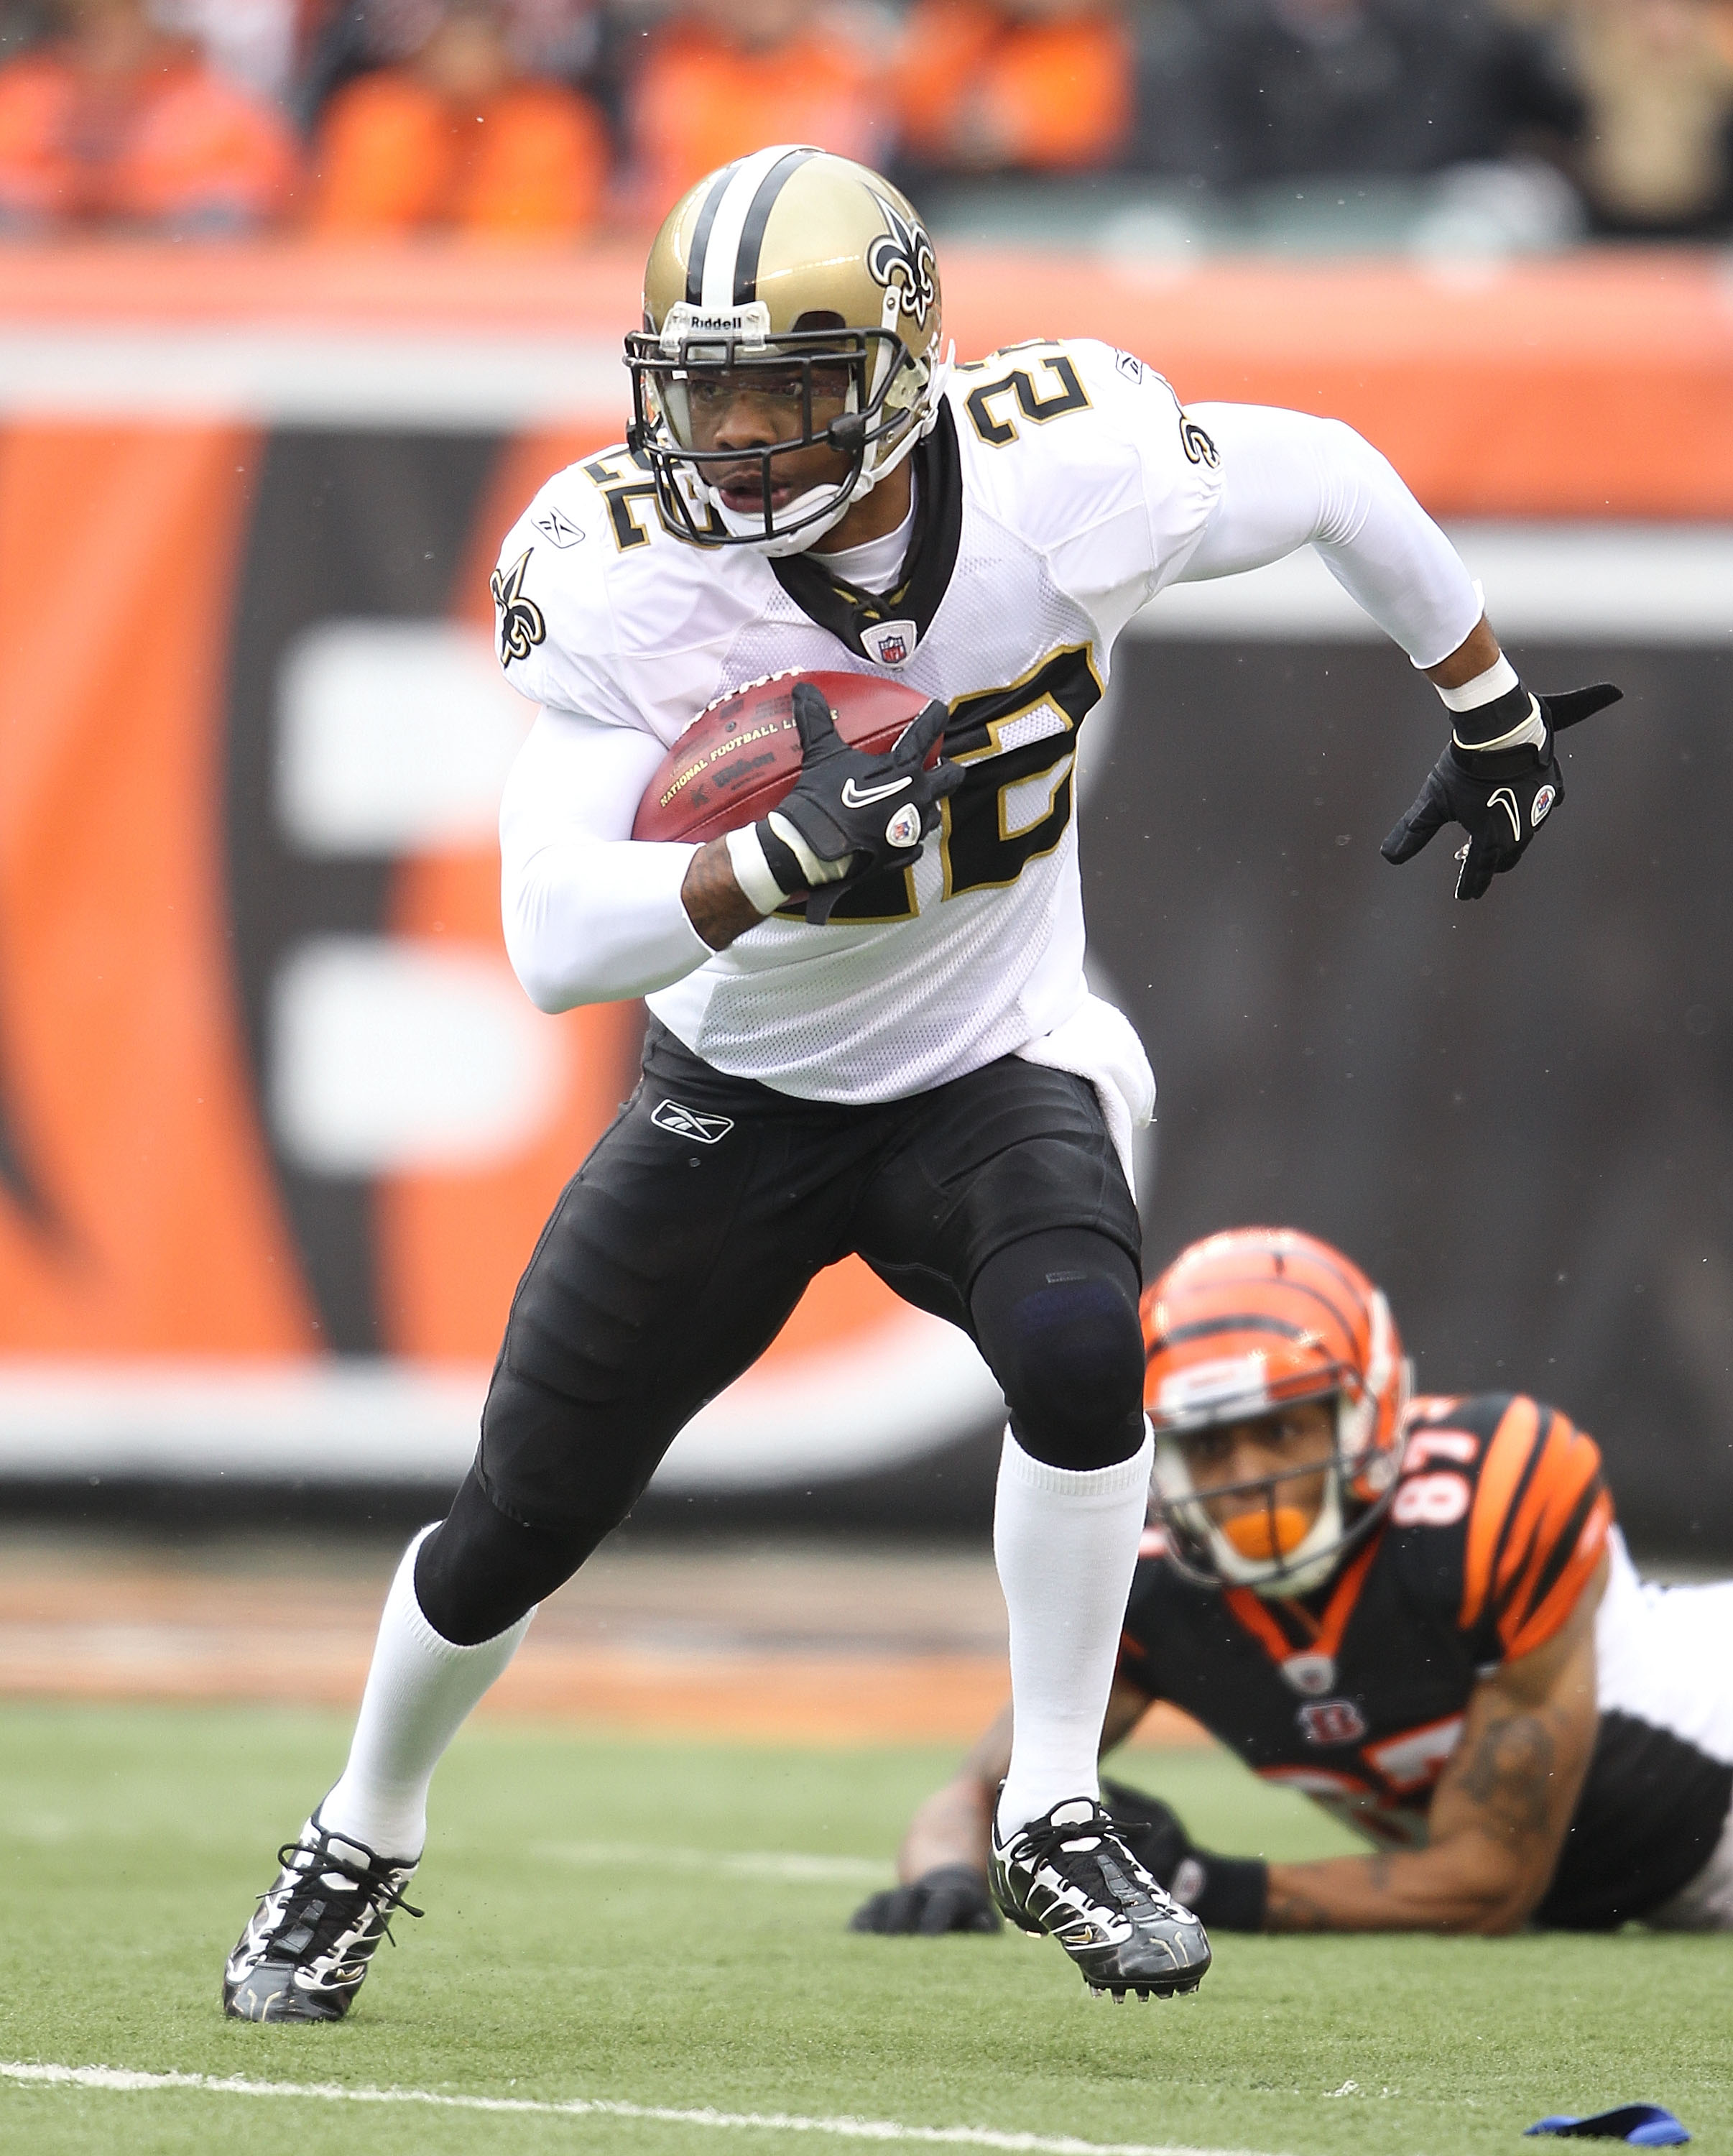 CINCINNATI, OH - DECEMBER 05:  Tracy Porter #22 of the New Orleans Saints runs with the ball during the NFL game against the Cincinnati Bengals at Paul Brown Stadium on December 5, 2010 in Cincinnati, Ohio.  The Saints won 34-30.  (Photo by Andy Lyons/Get